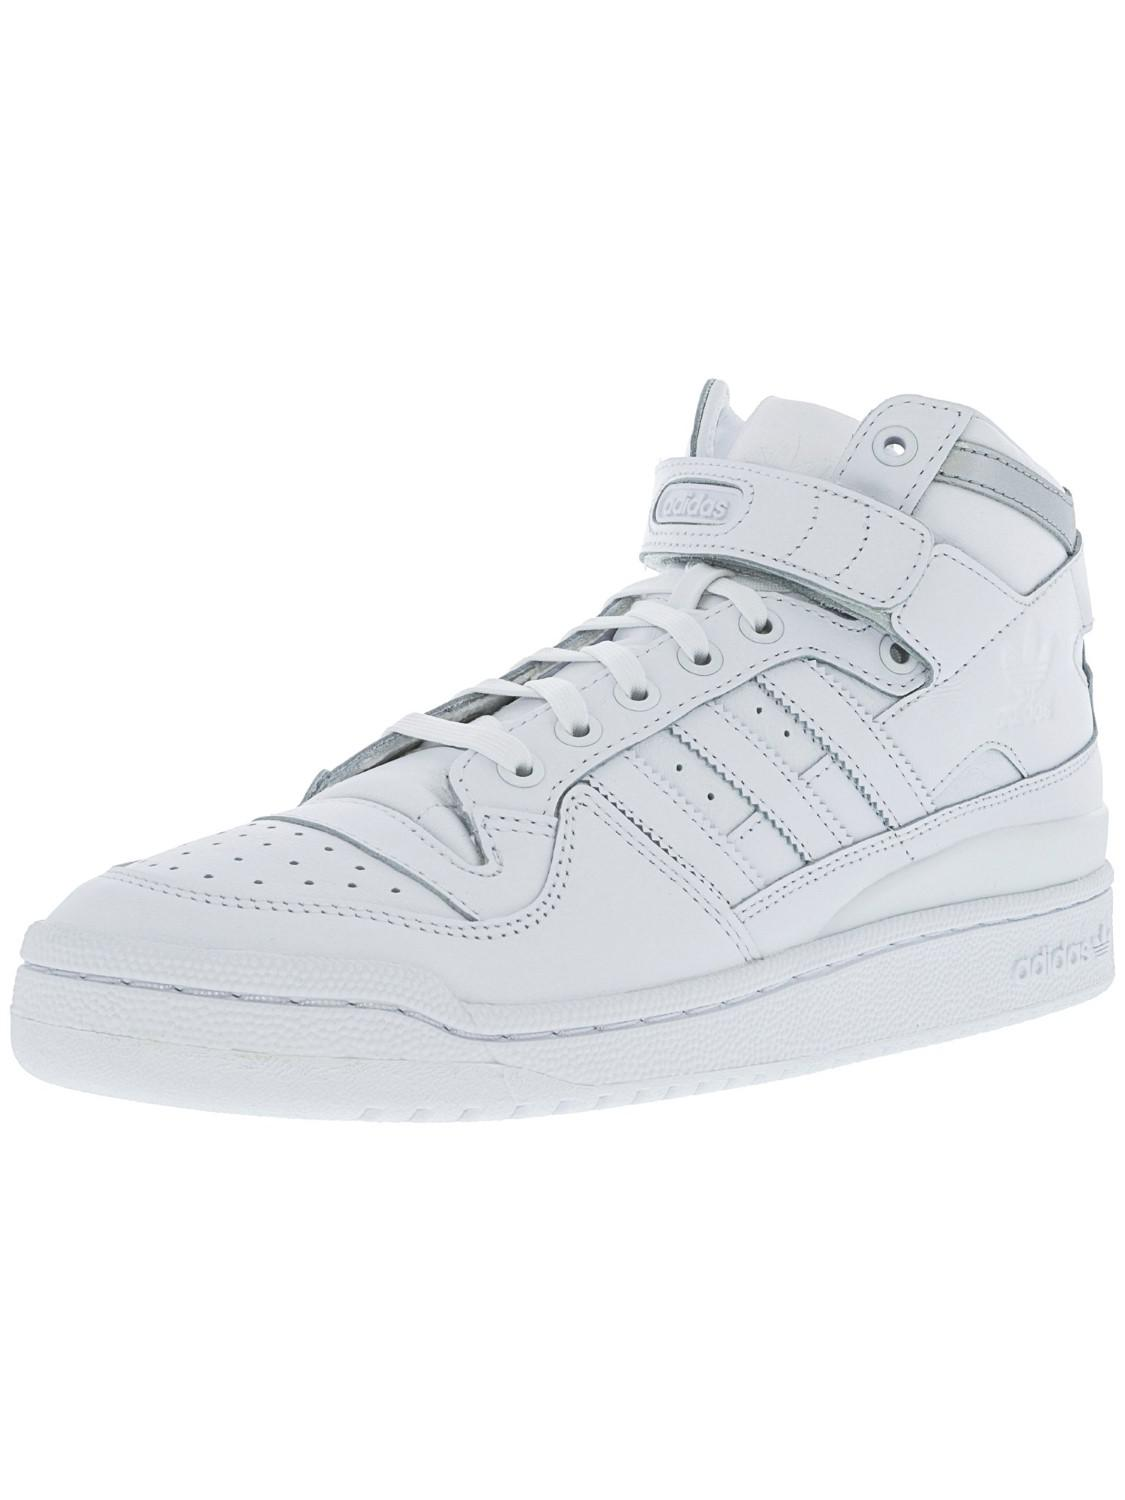 separation shoes 20a4c 5e53f adidas Forum Mid Refined Footwear White   Silver Metallic Mid-top ...